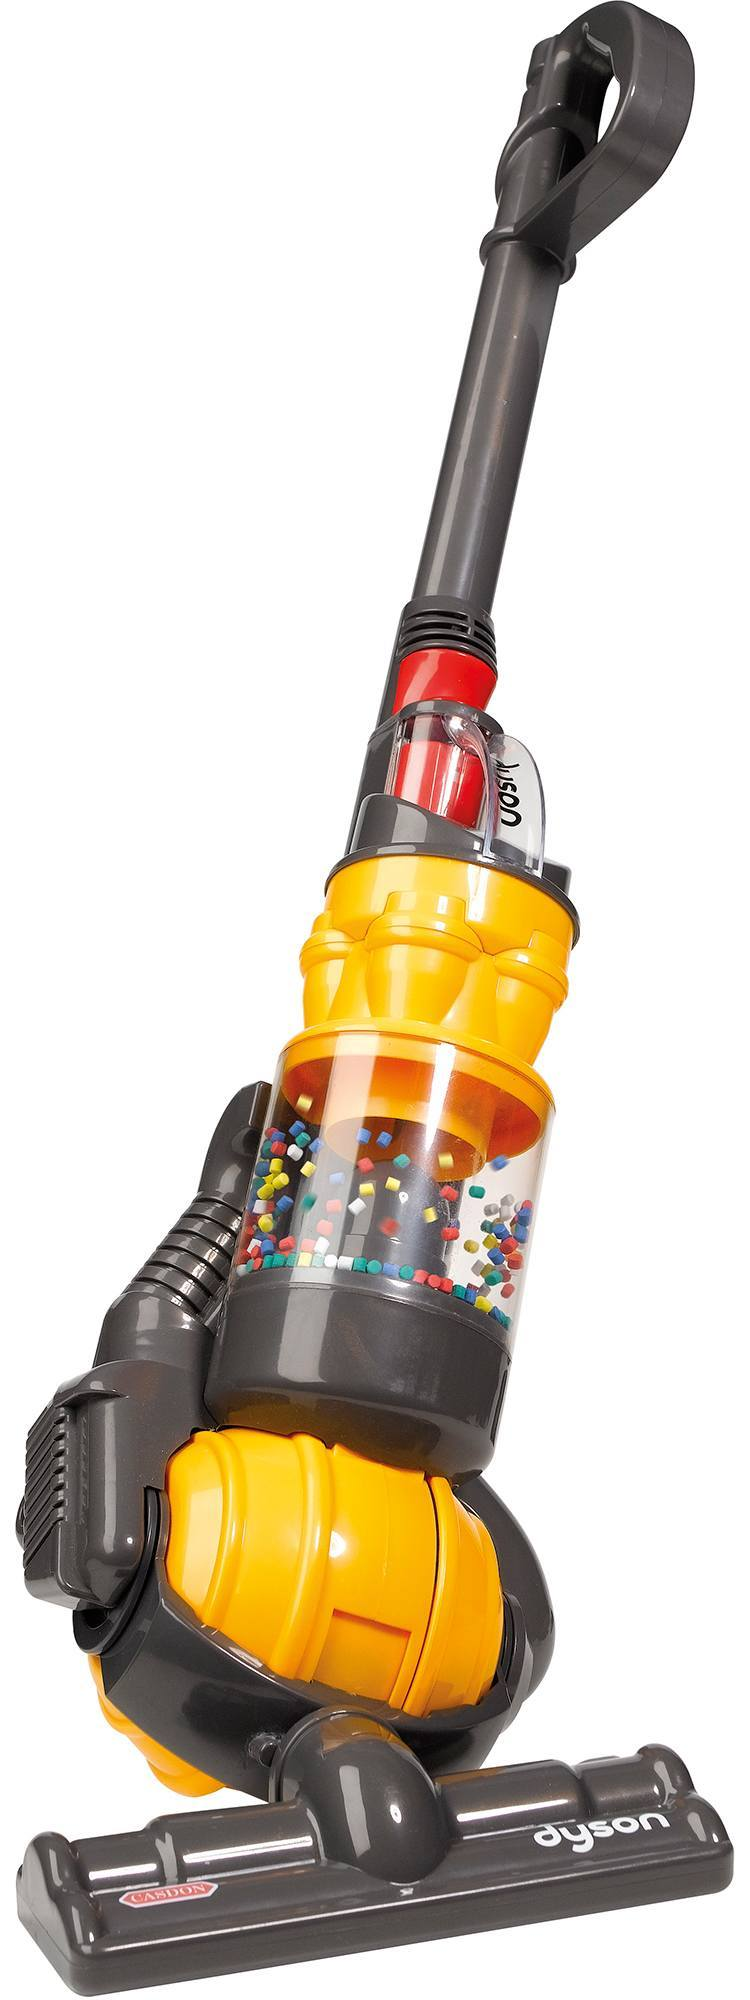 Casdon Dyson Ball Vacuum Cleaner Toy Hoover Pretend Play